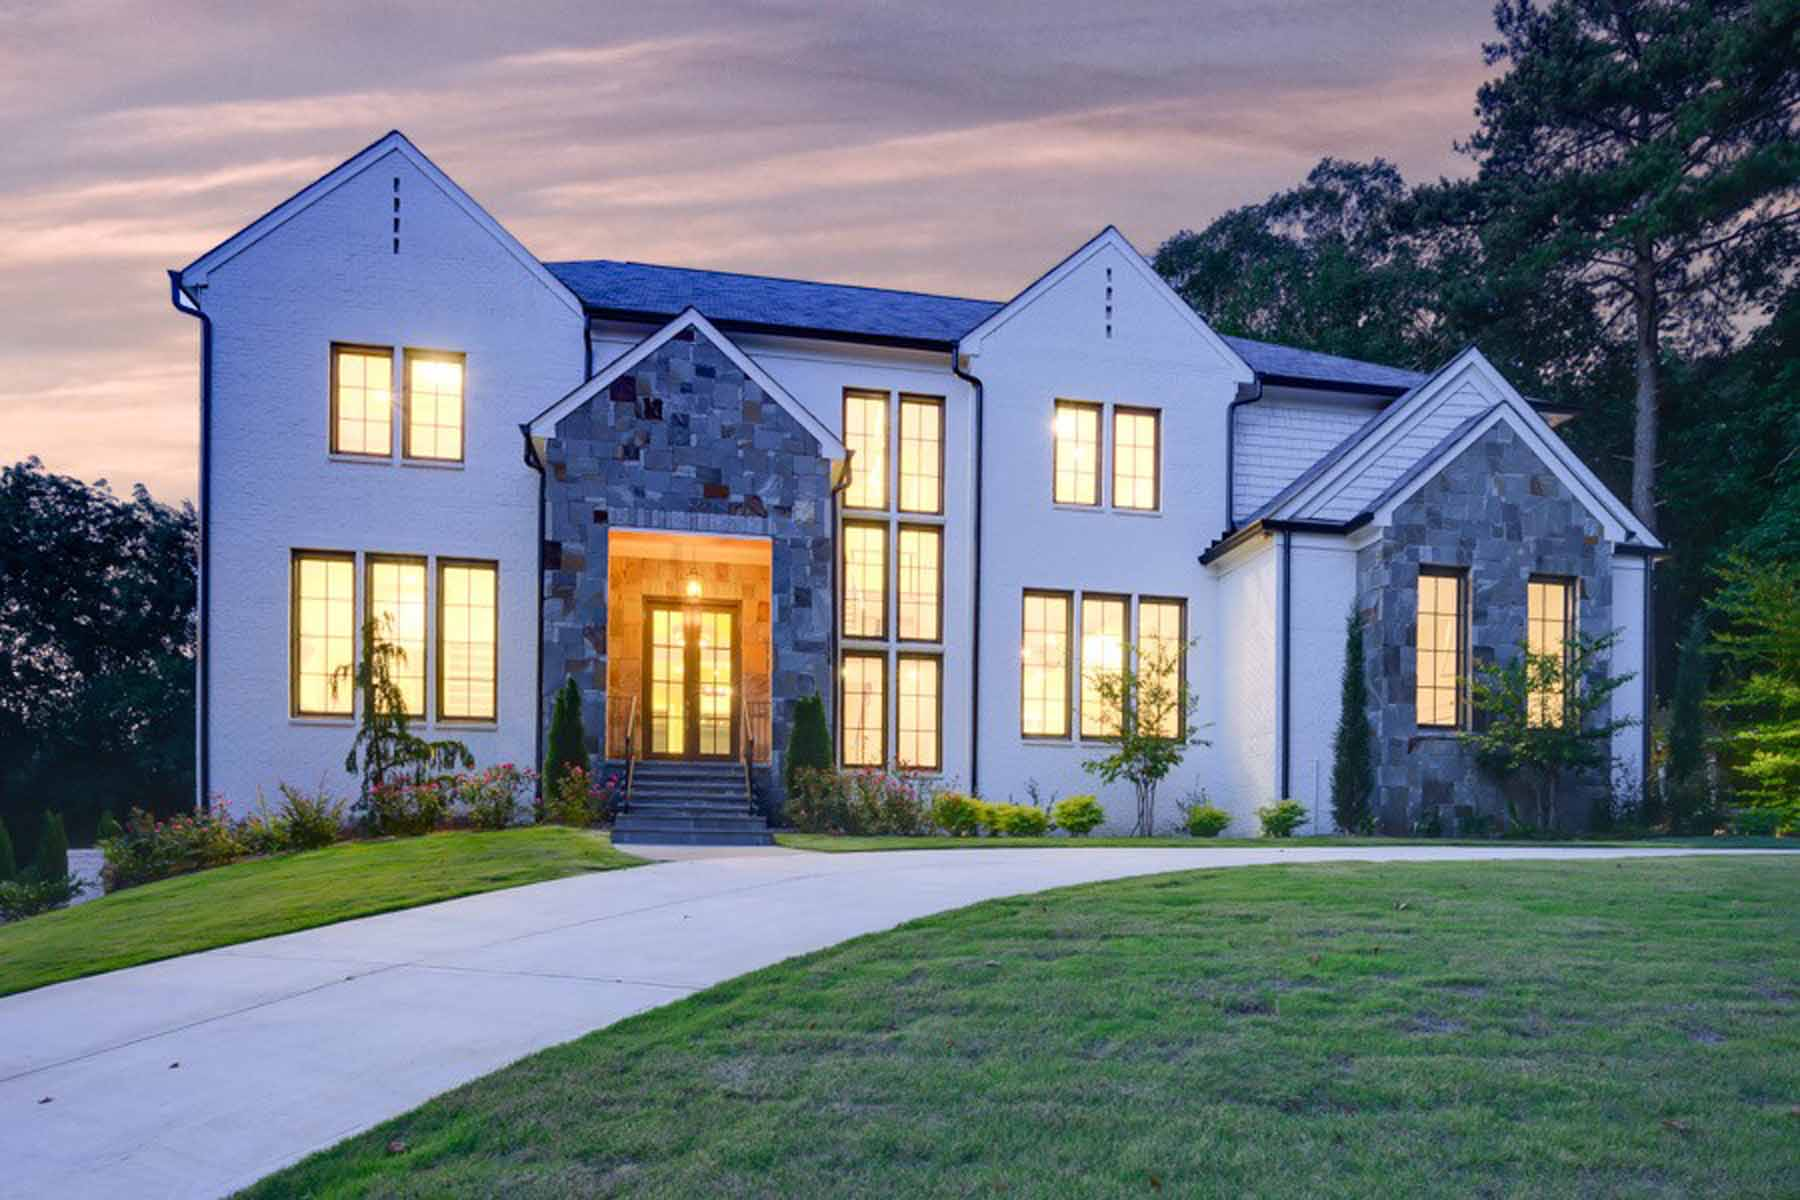 Single Family Homes for Sale at Sophisticated Atlanta Country Club Elegance 510 Brook Hollow Circle SE Marietta, Georgia 30067 United States